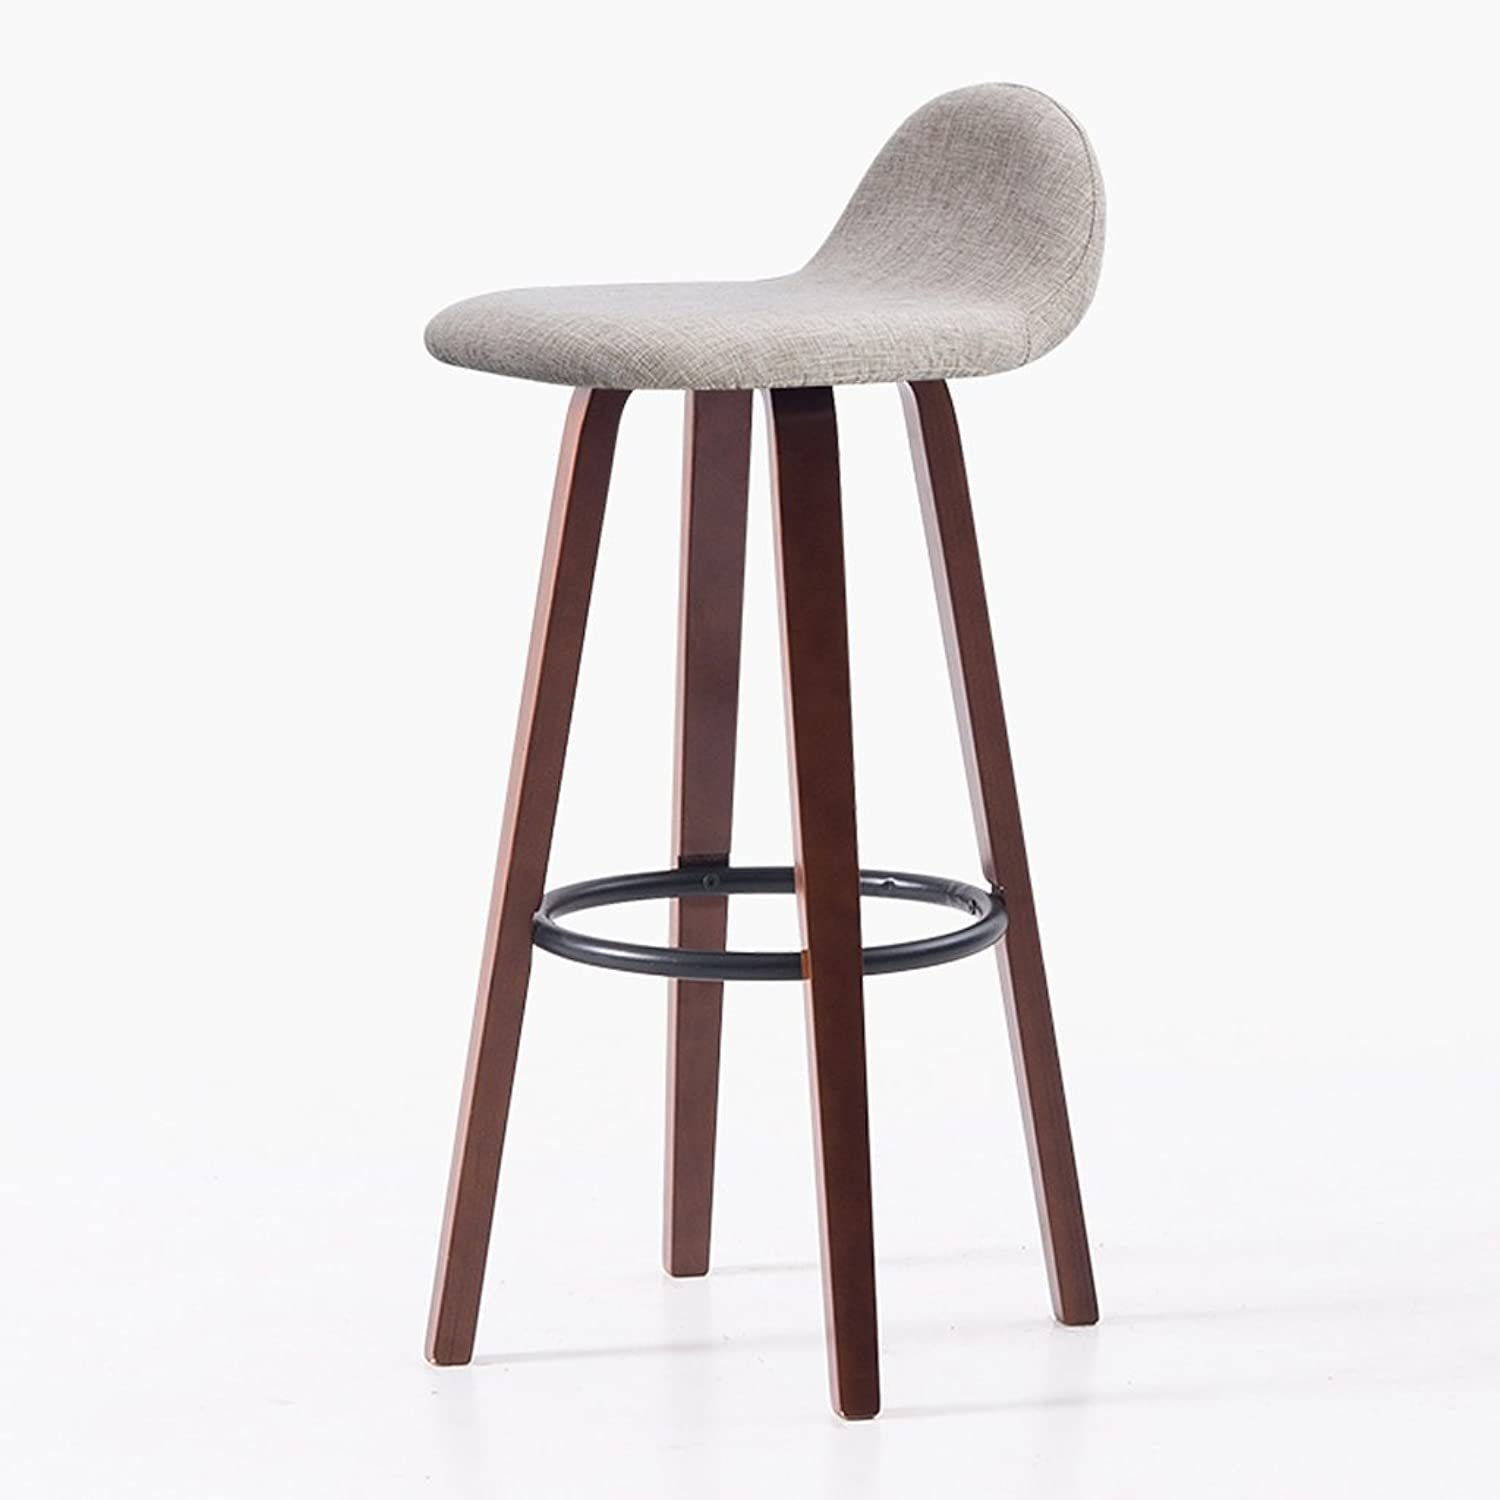 Ghjkl Bar Chairs Back Iron bar Stool Phone bar bar Chairs Solid Wood Front Desk Stool -by TIANTA (color   Linen)